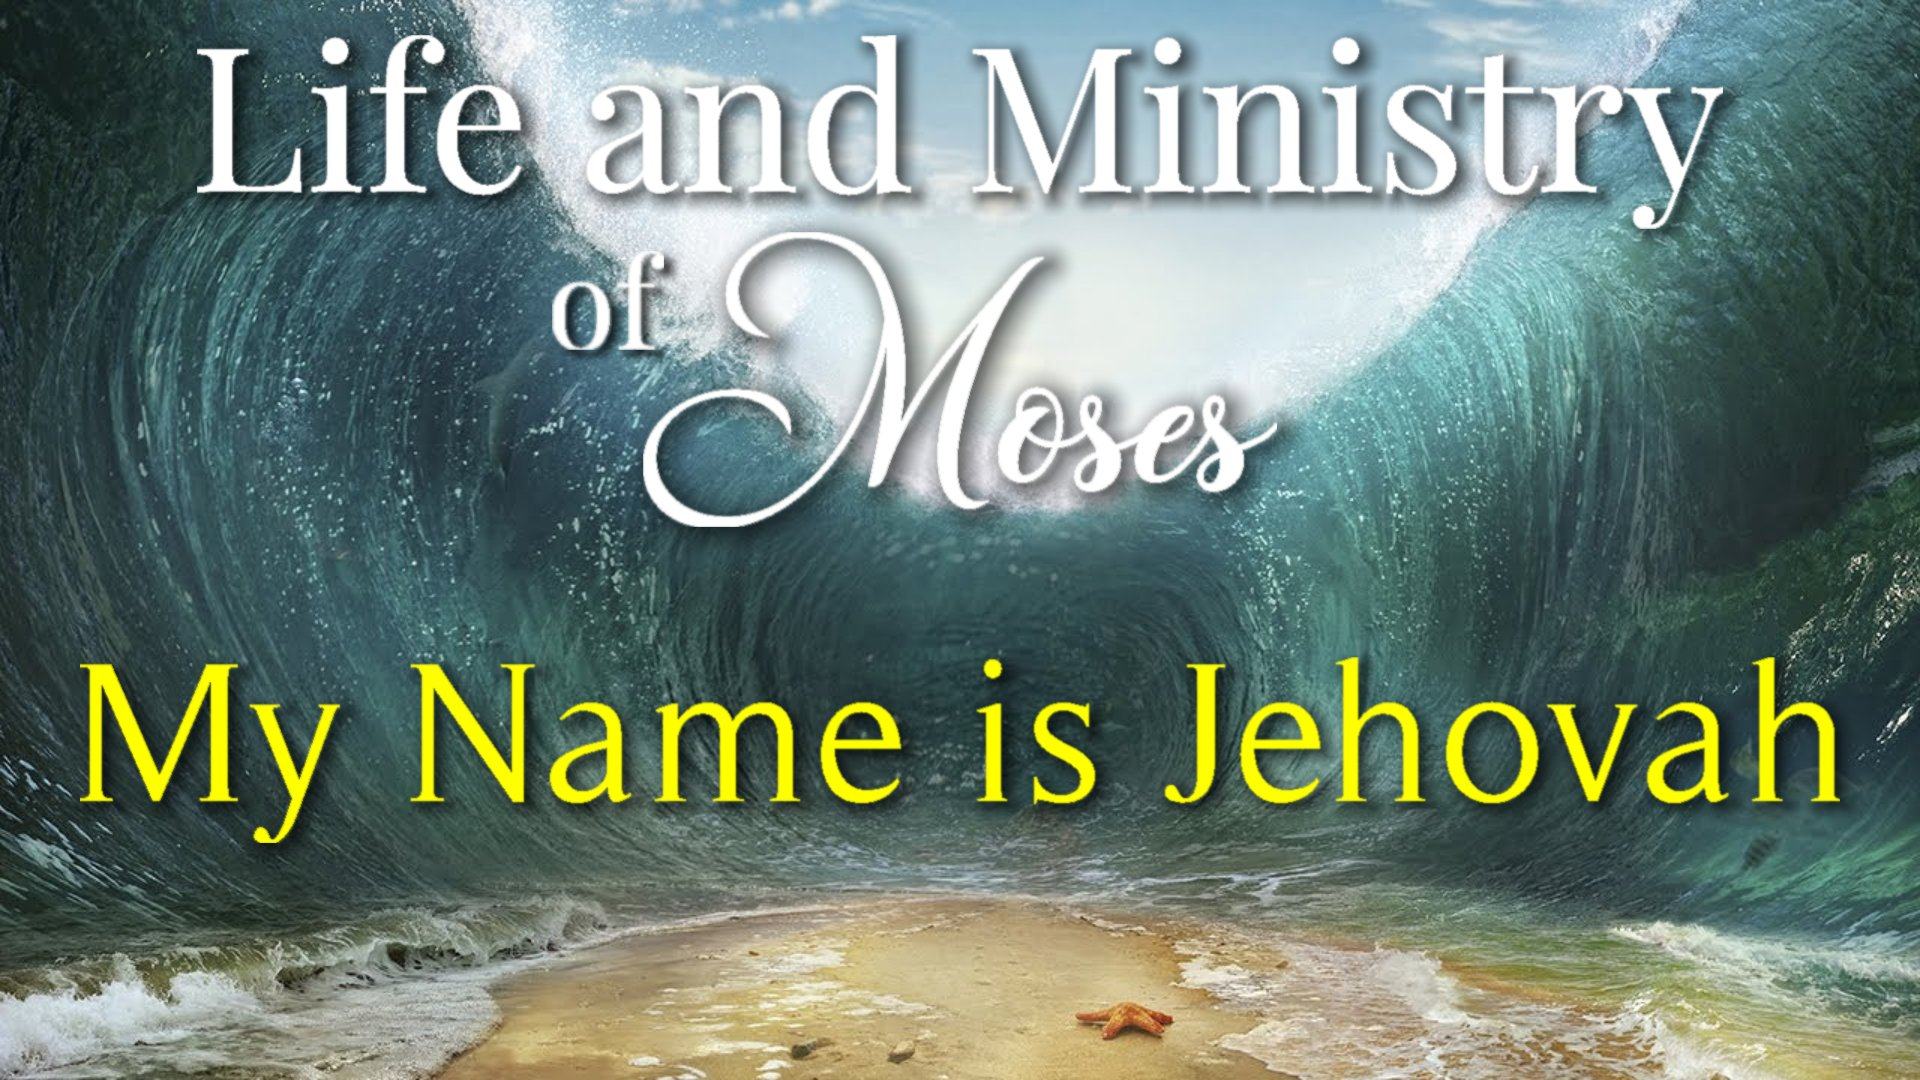 08 My Name is Jehovah